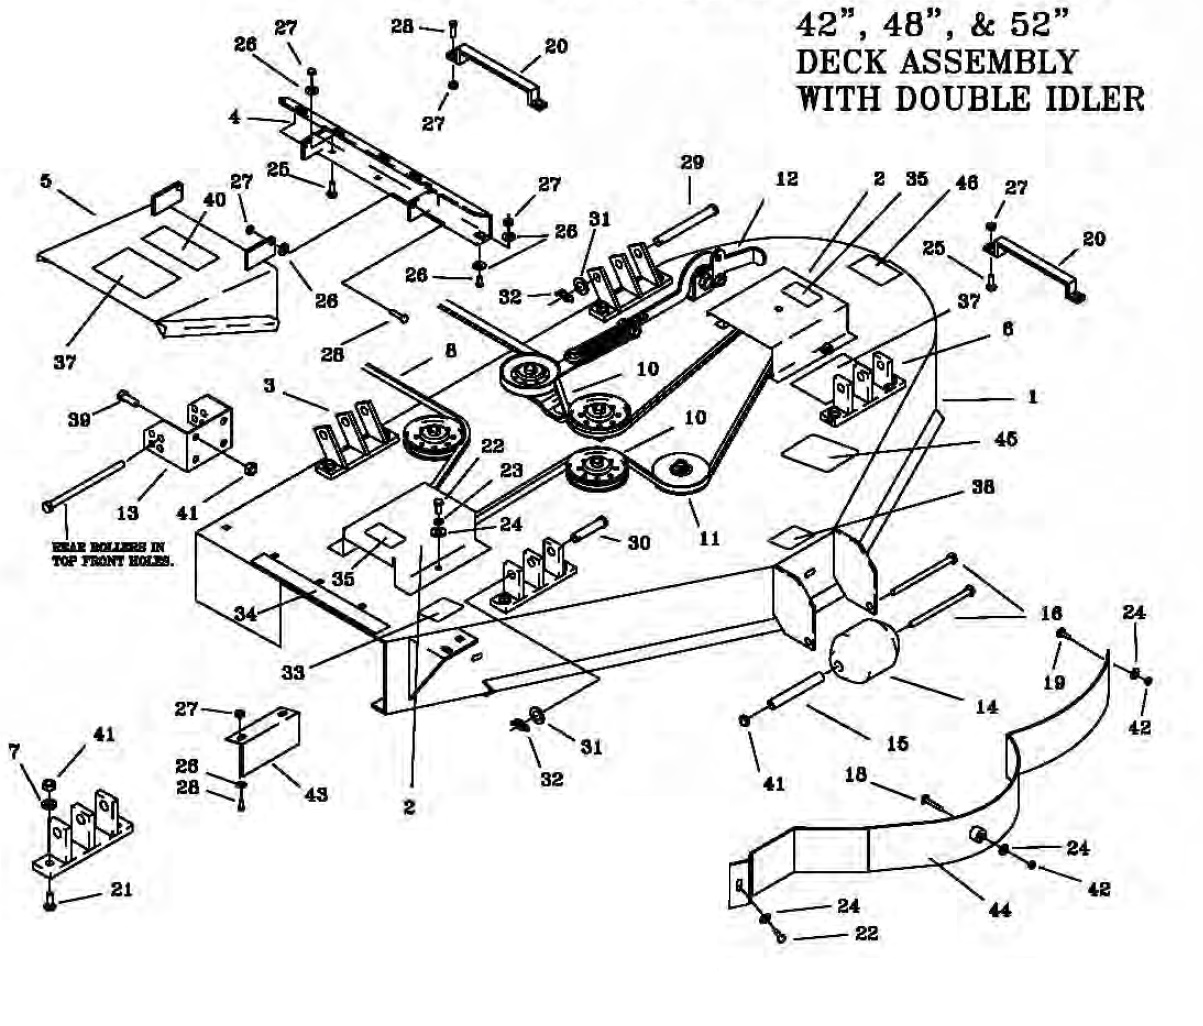 Wiring harness on an exmark mower moreover 592645632185418486 additionally 2011 chrysler 200 belt routing diagram also